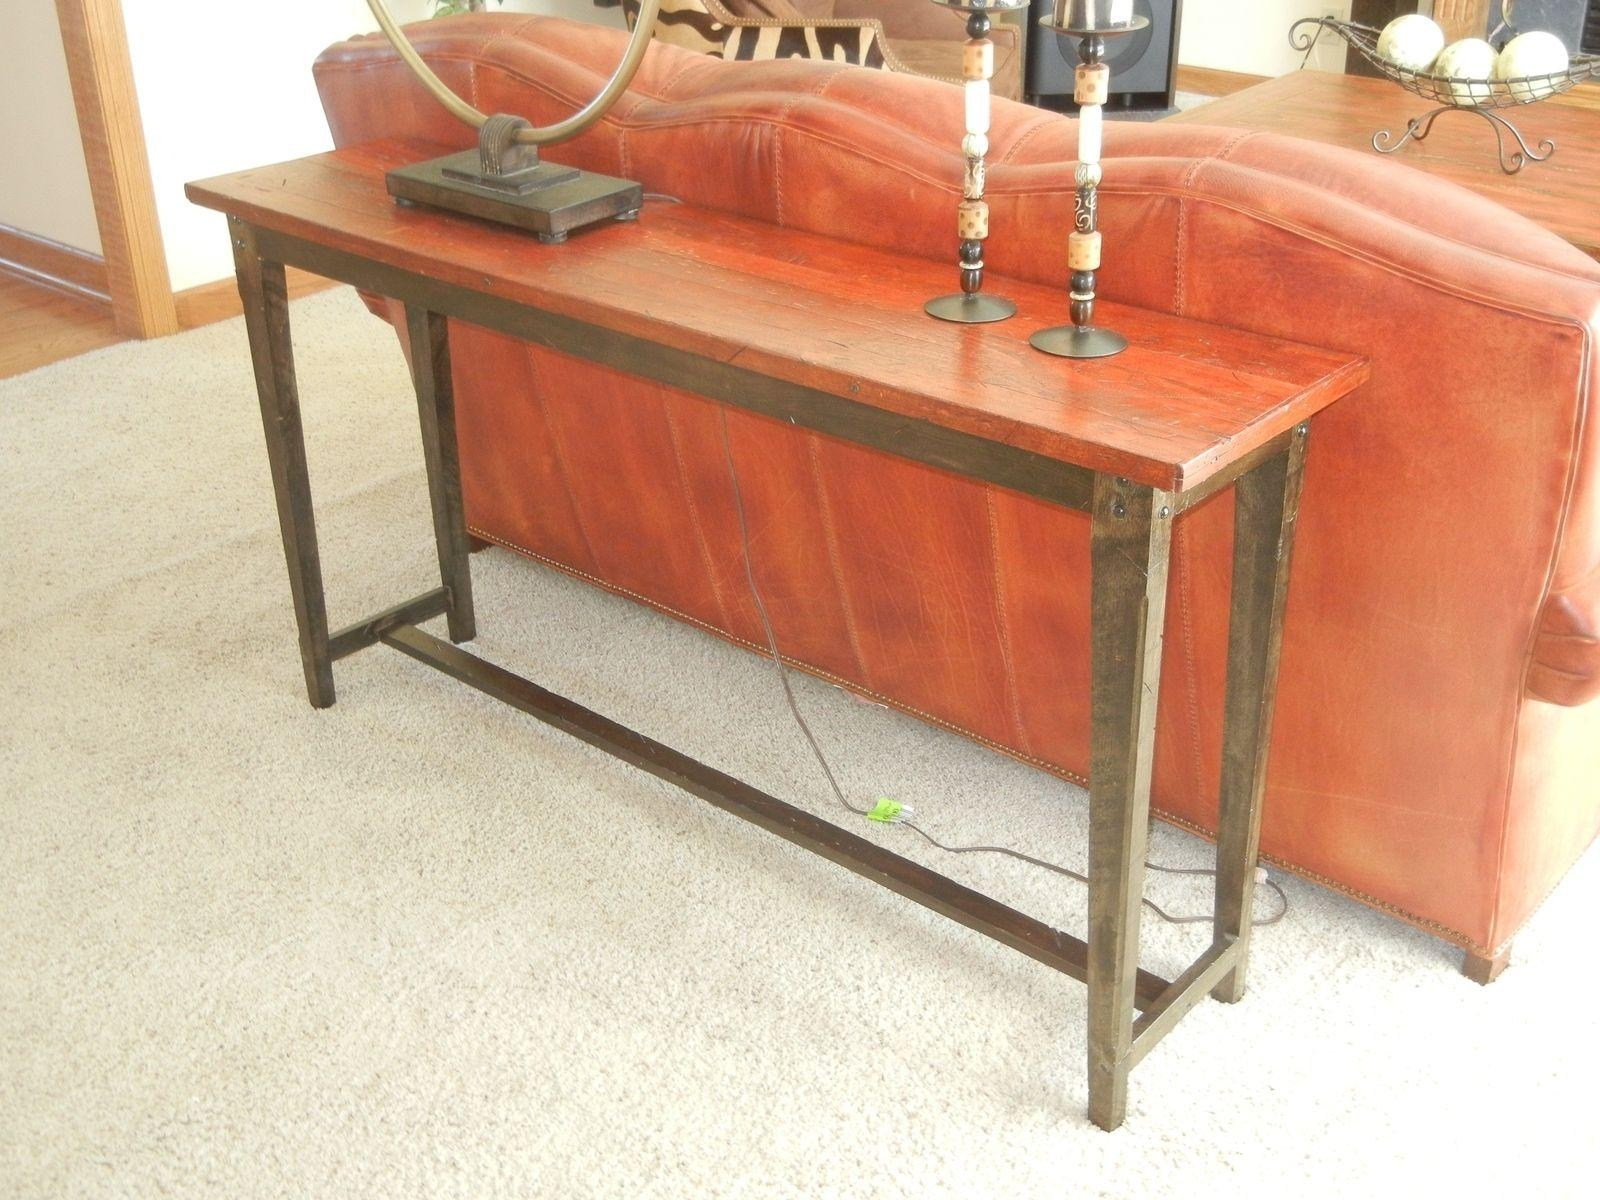 Hand Crafted Reclaimed Barnwood Sofa Tableecho Peak Design Throughout Barnwood Sofa Tables (Image 7 of 20)